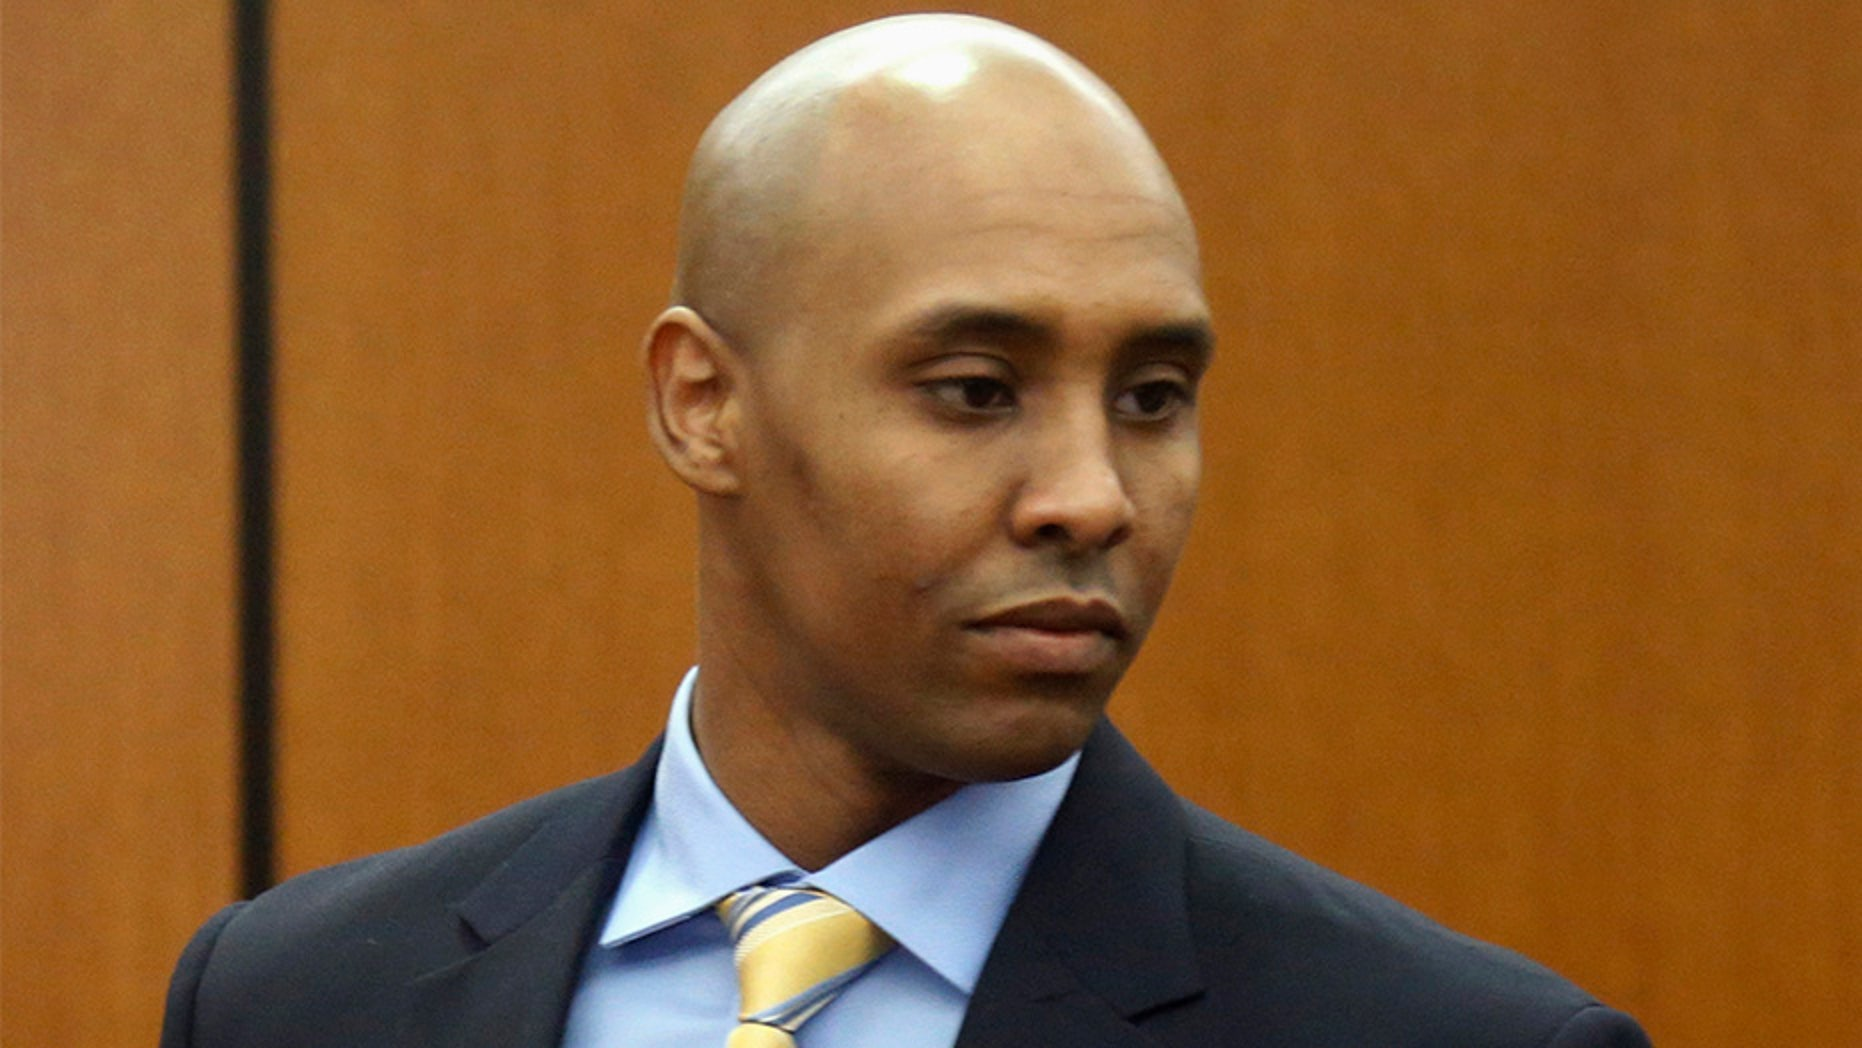 Former Minneapolis police officer Mohamed Noor appeared at the Hennepin County Government Center in May for a hearing on the case.